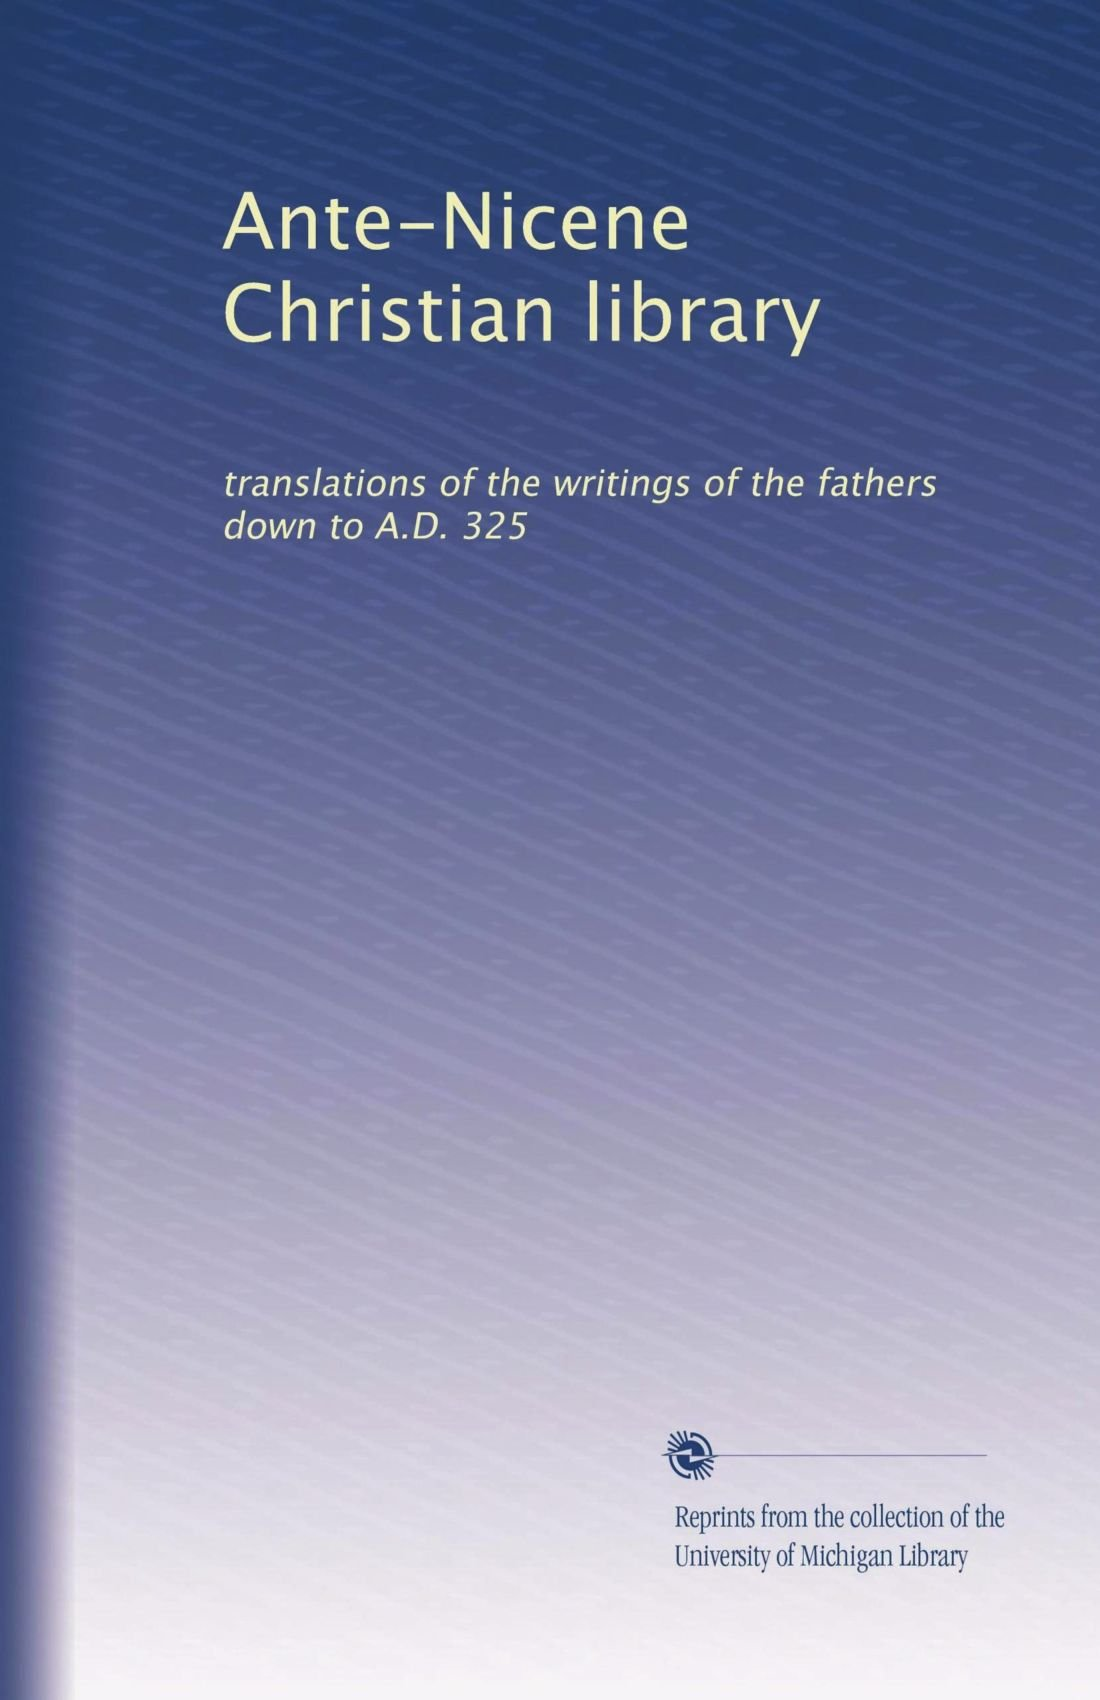 Download Ante-Nicene Christian library: translations of the writings of the fathers down to A.D. 325 pdf epub